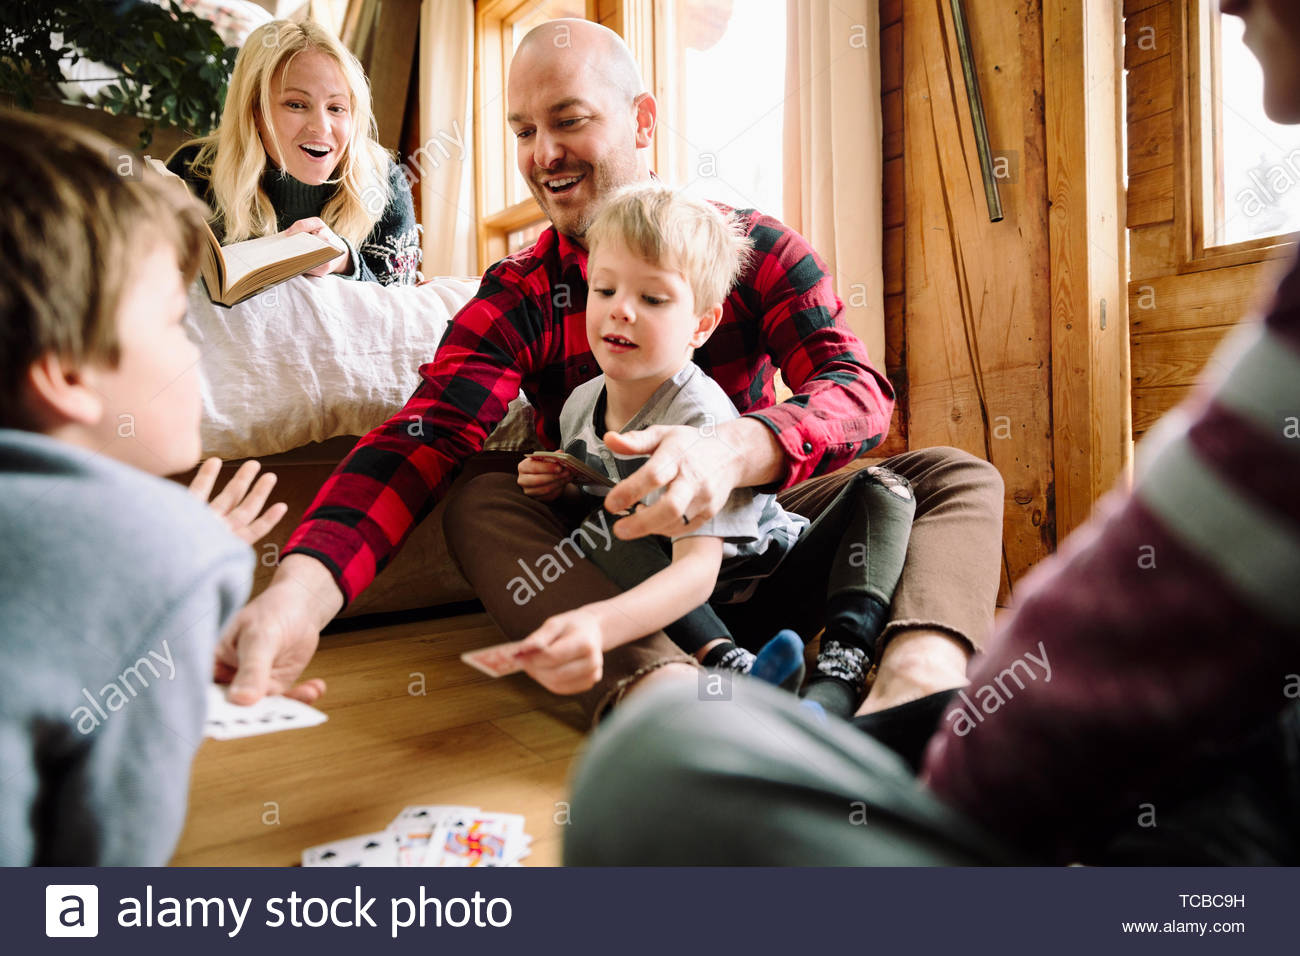 Family playing cards in cabin - Stock Image